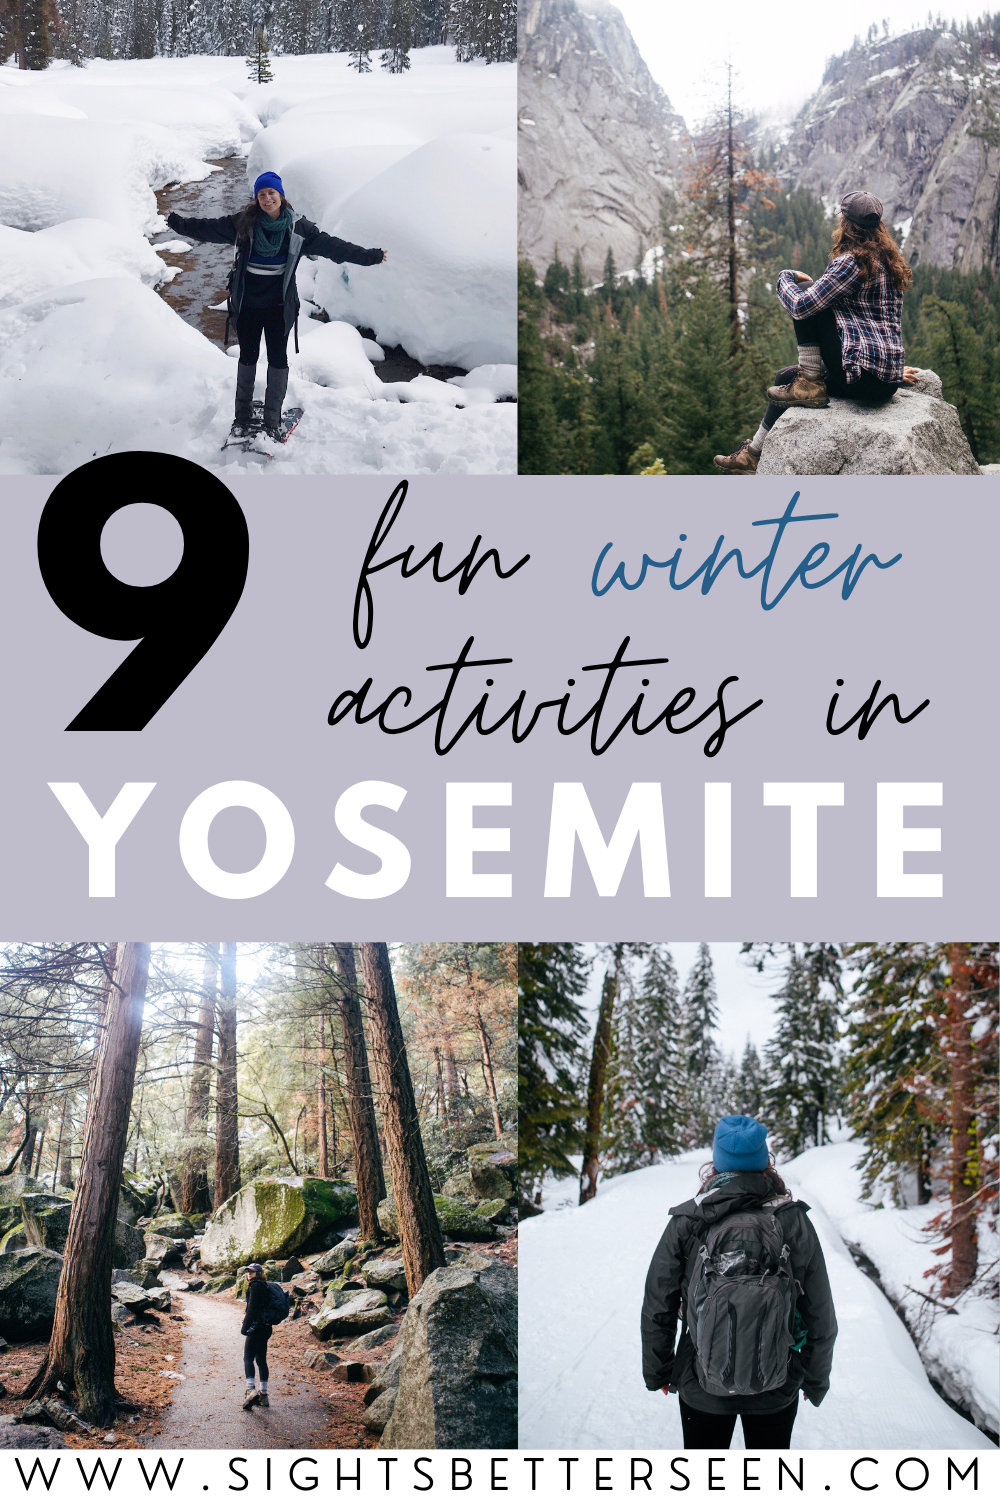 "There are 4 different pictures, including Kelsey on snowshoes, Kelsey sitting on a rock, Kelsey walking on a trail, and Kelsey standing in the snow. Text says ""9 Fun Winter Activities in Yosemite""."